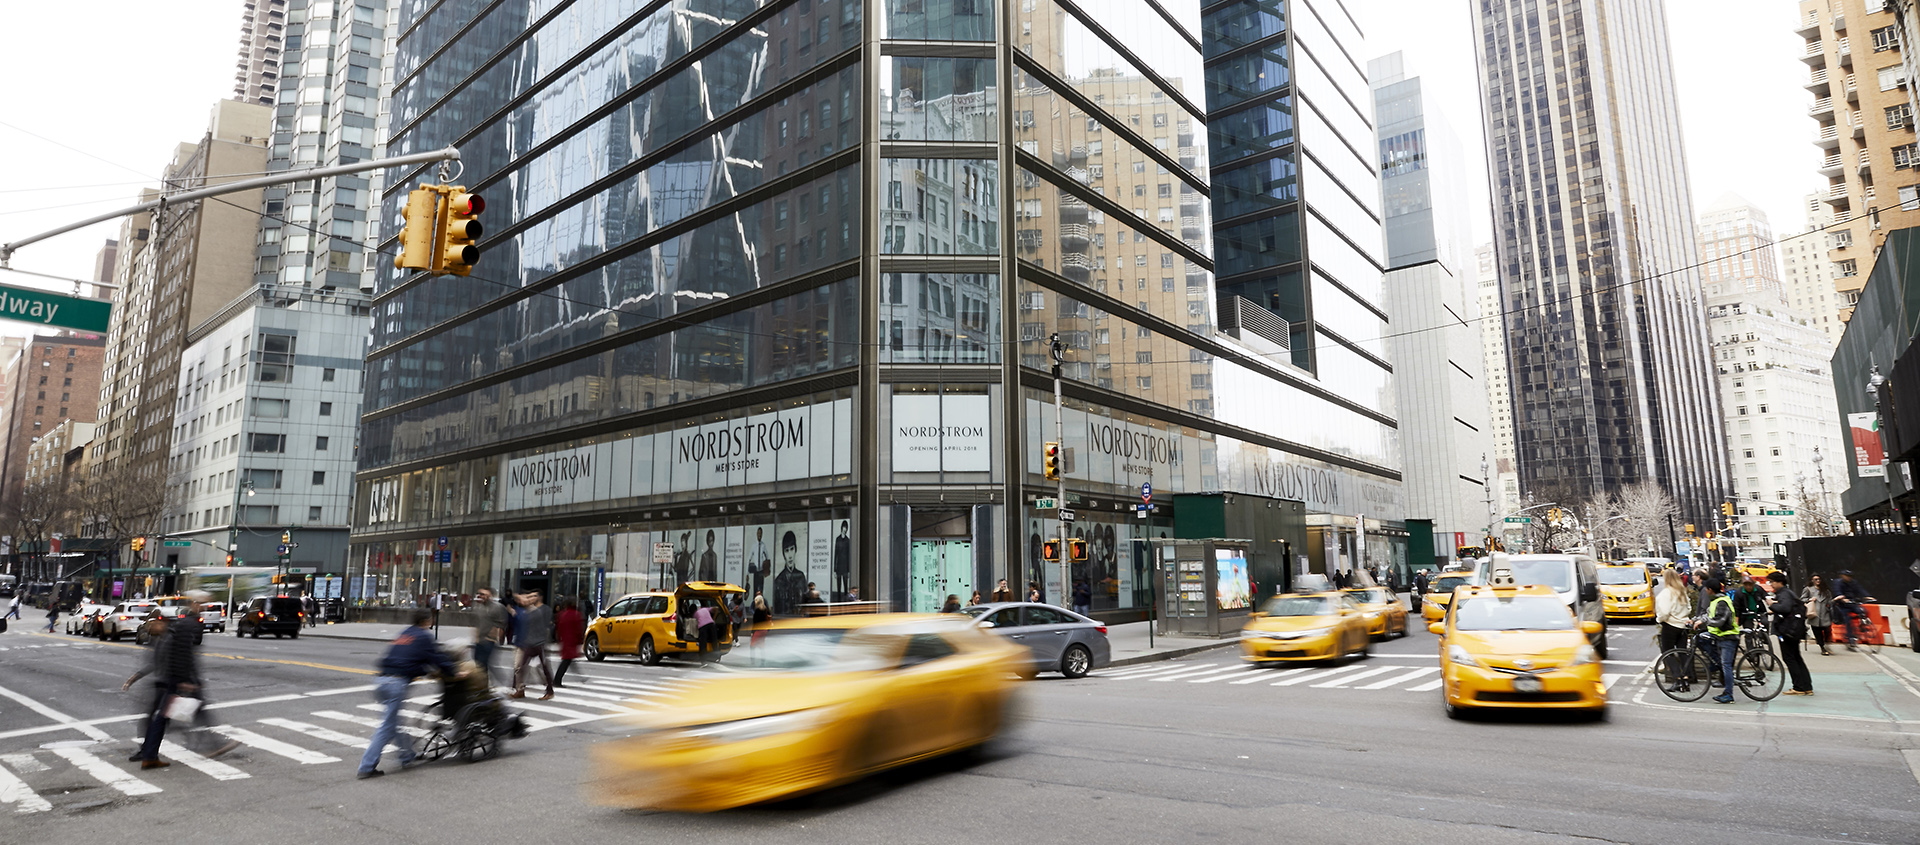 Nordstrom Flagship Store NYC